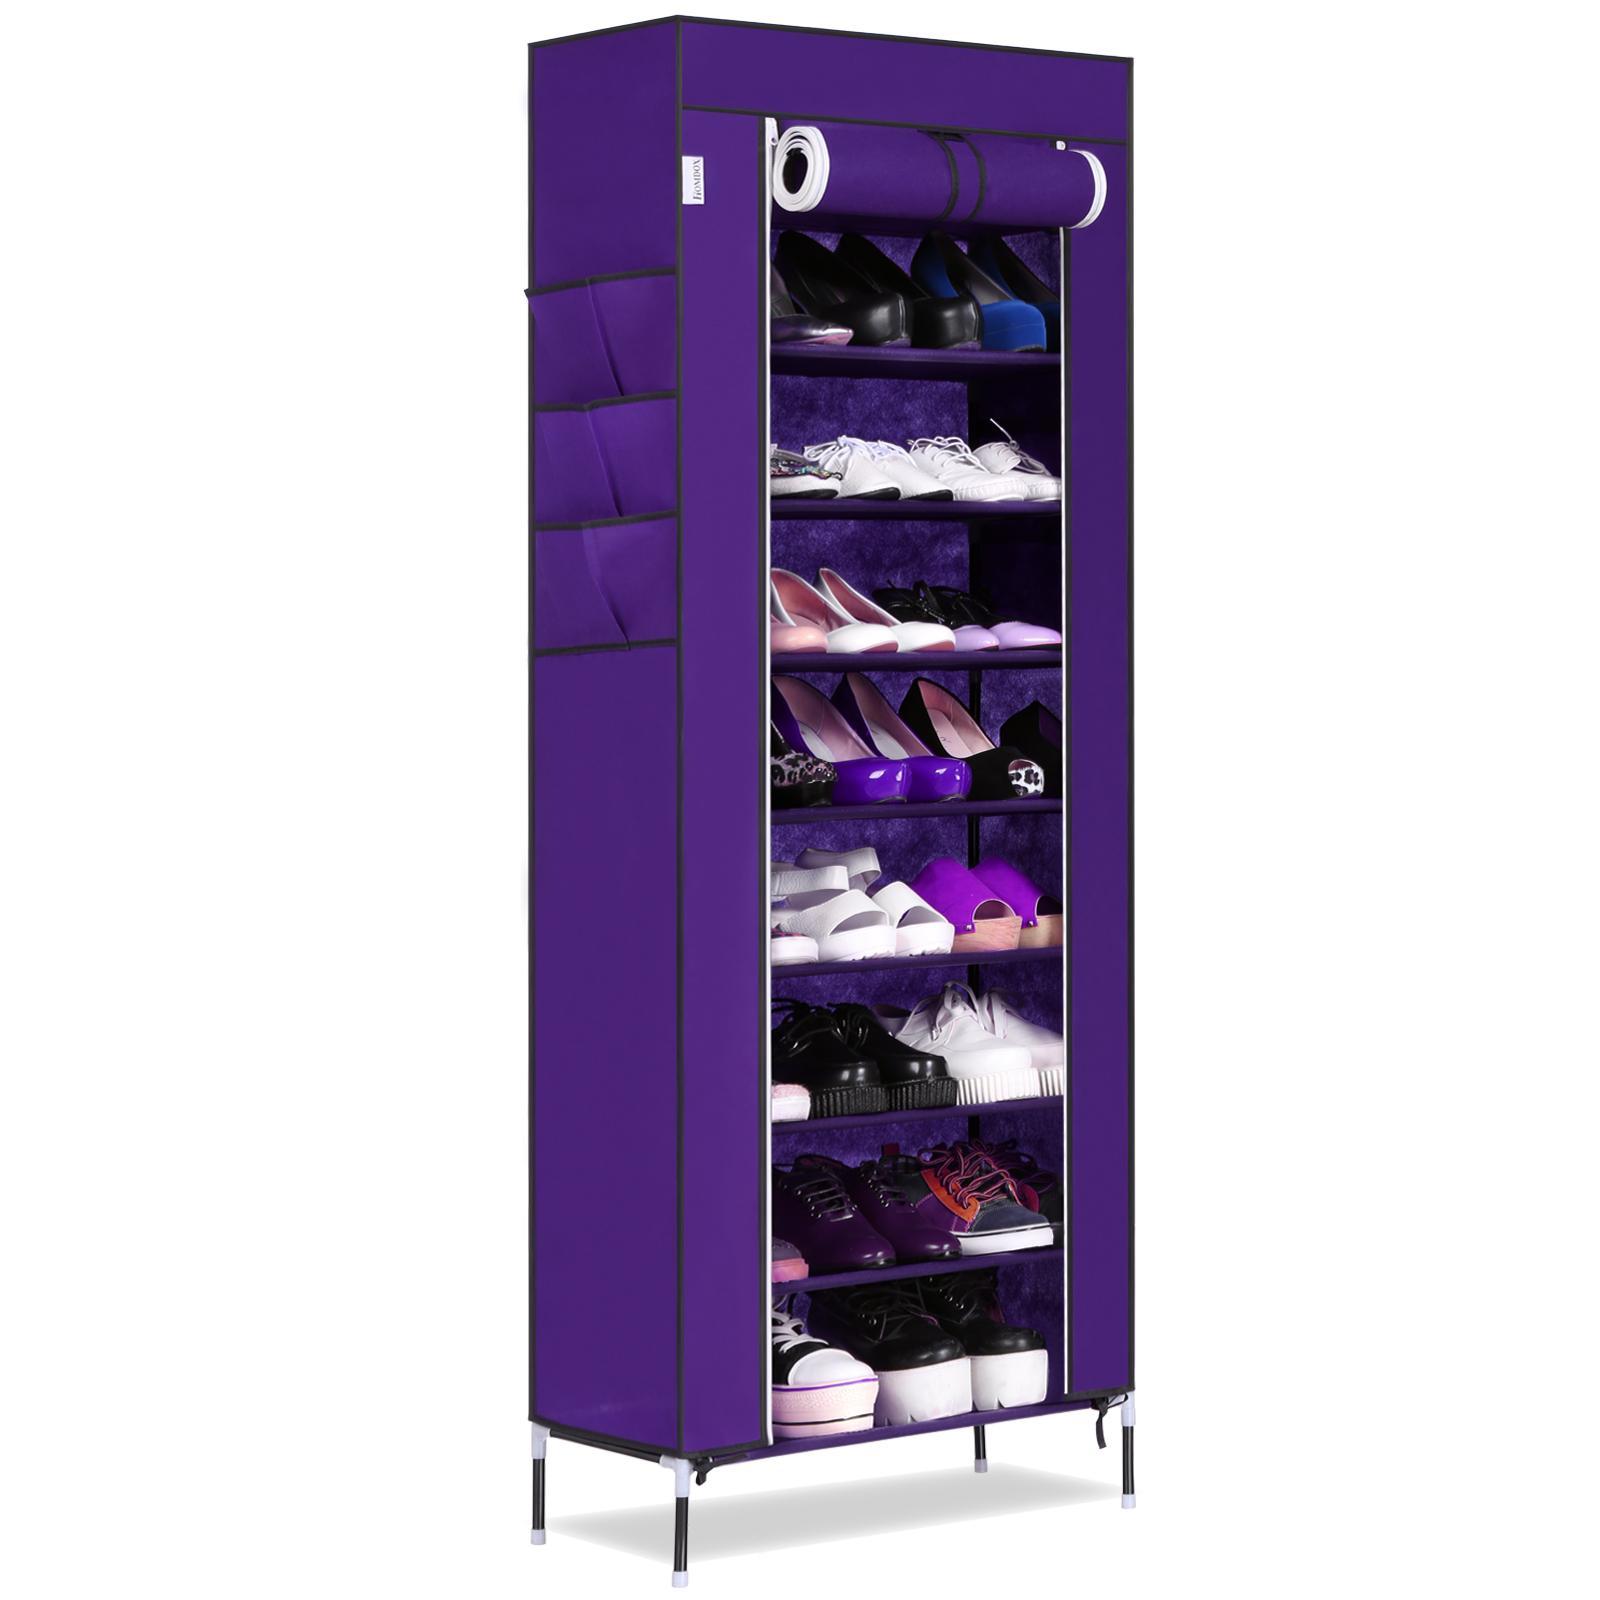 Oakeskaran Durable Home Use 10 Layer 9 Grids Large Capacity Shoe Cabinet Shoes Storage Racks Home Decorative Furniture